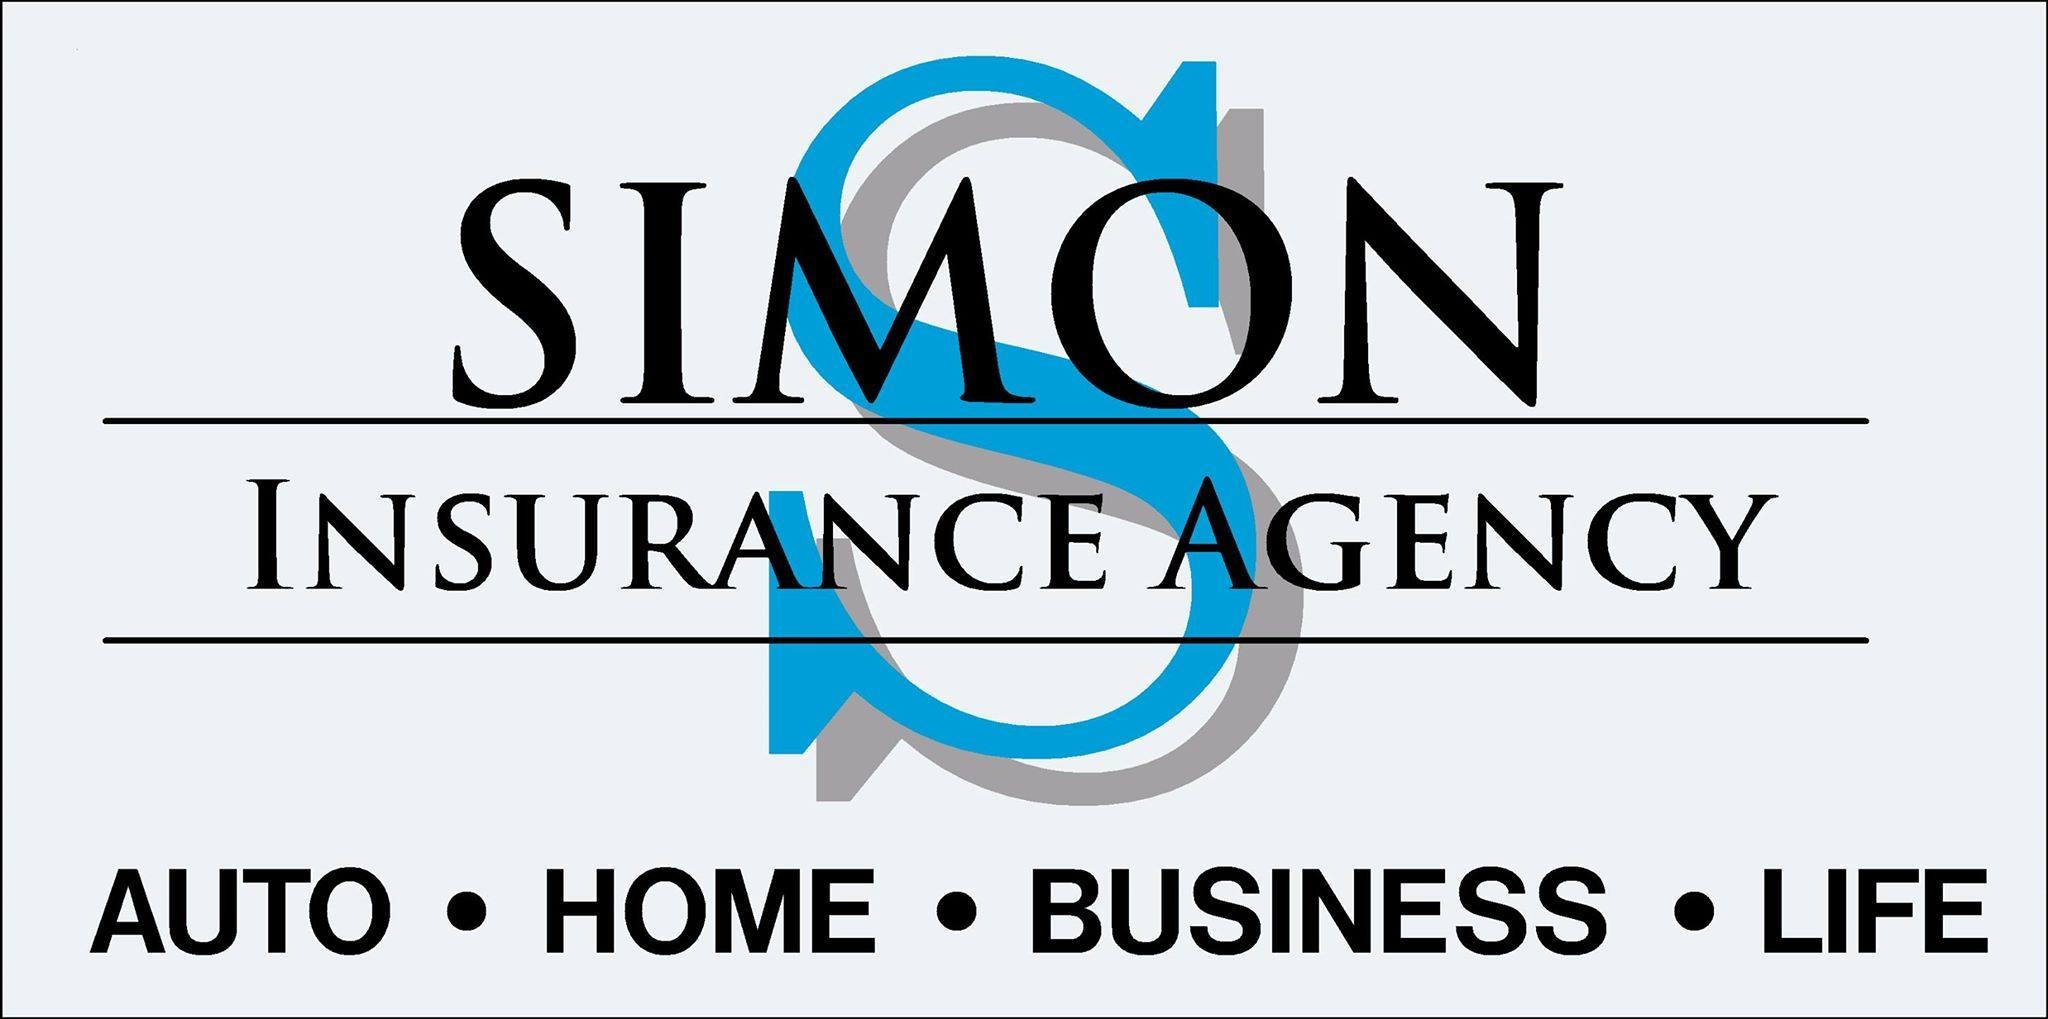 Motorcycle Stores Near Me >> Simon Insurance Agency Coupons near me in Portland | 8coupons